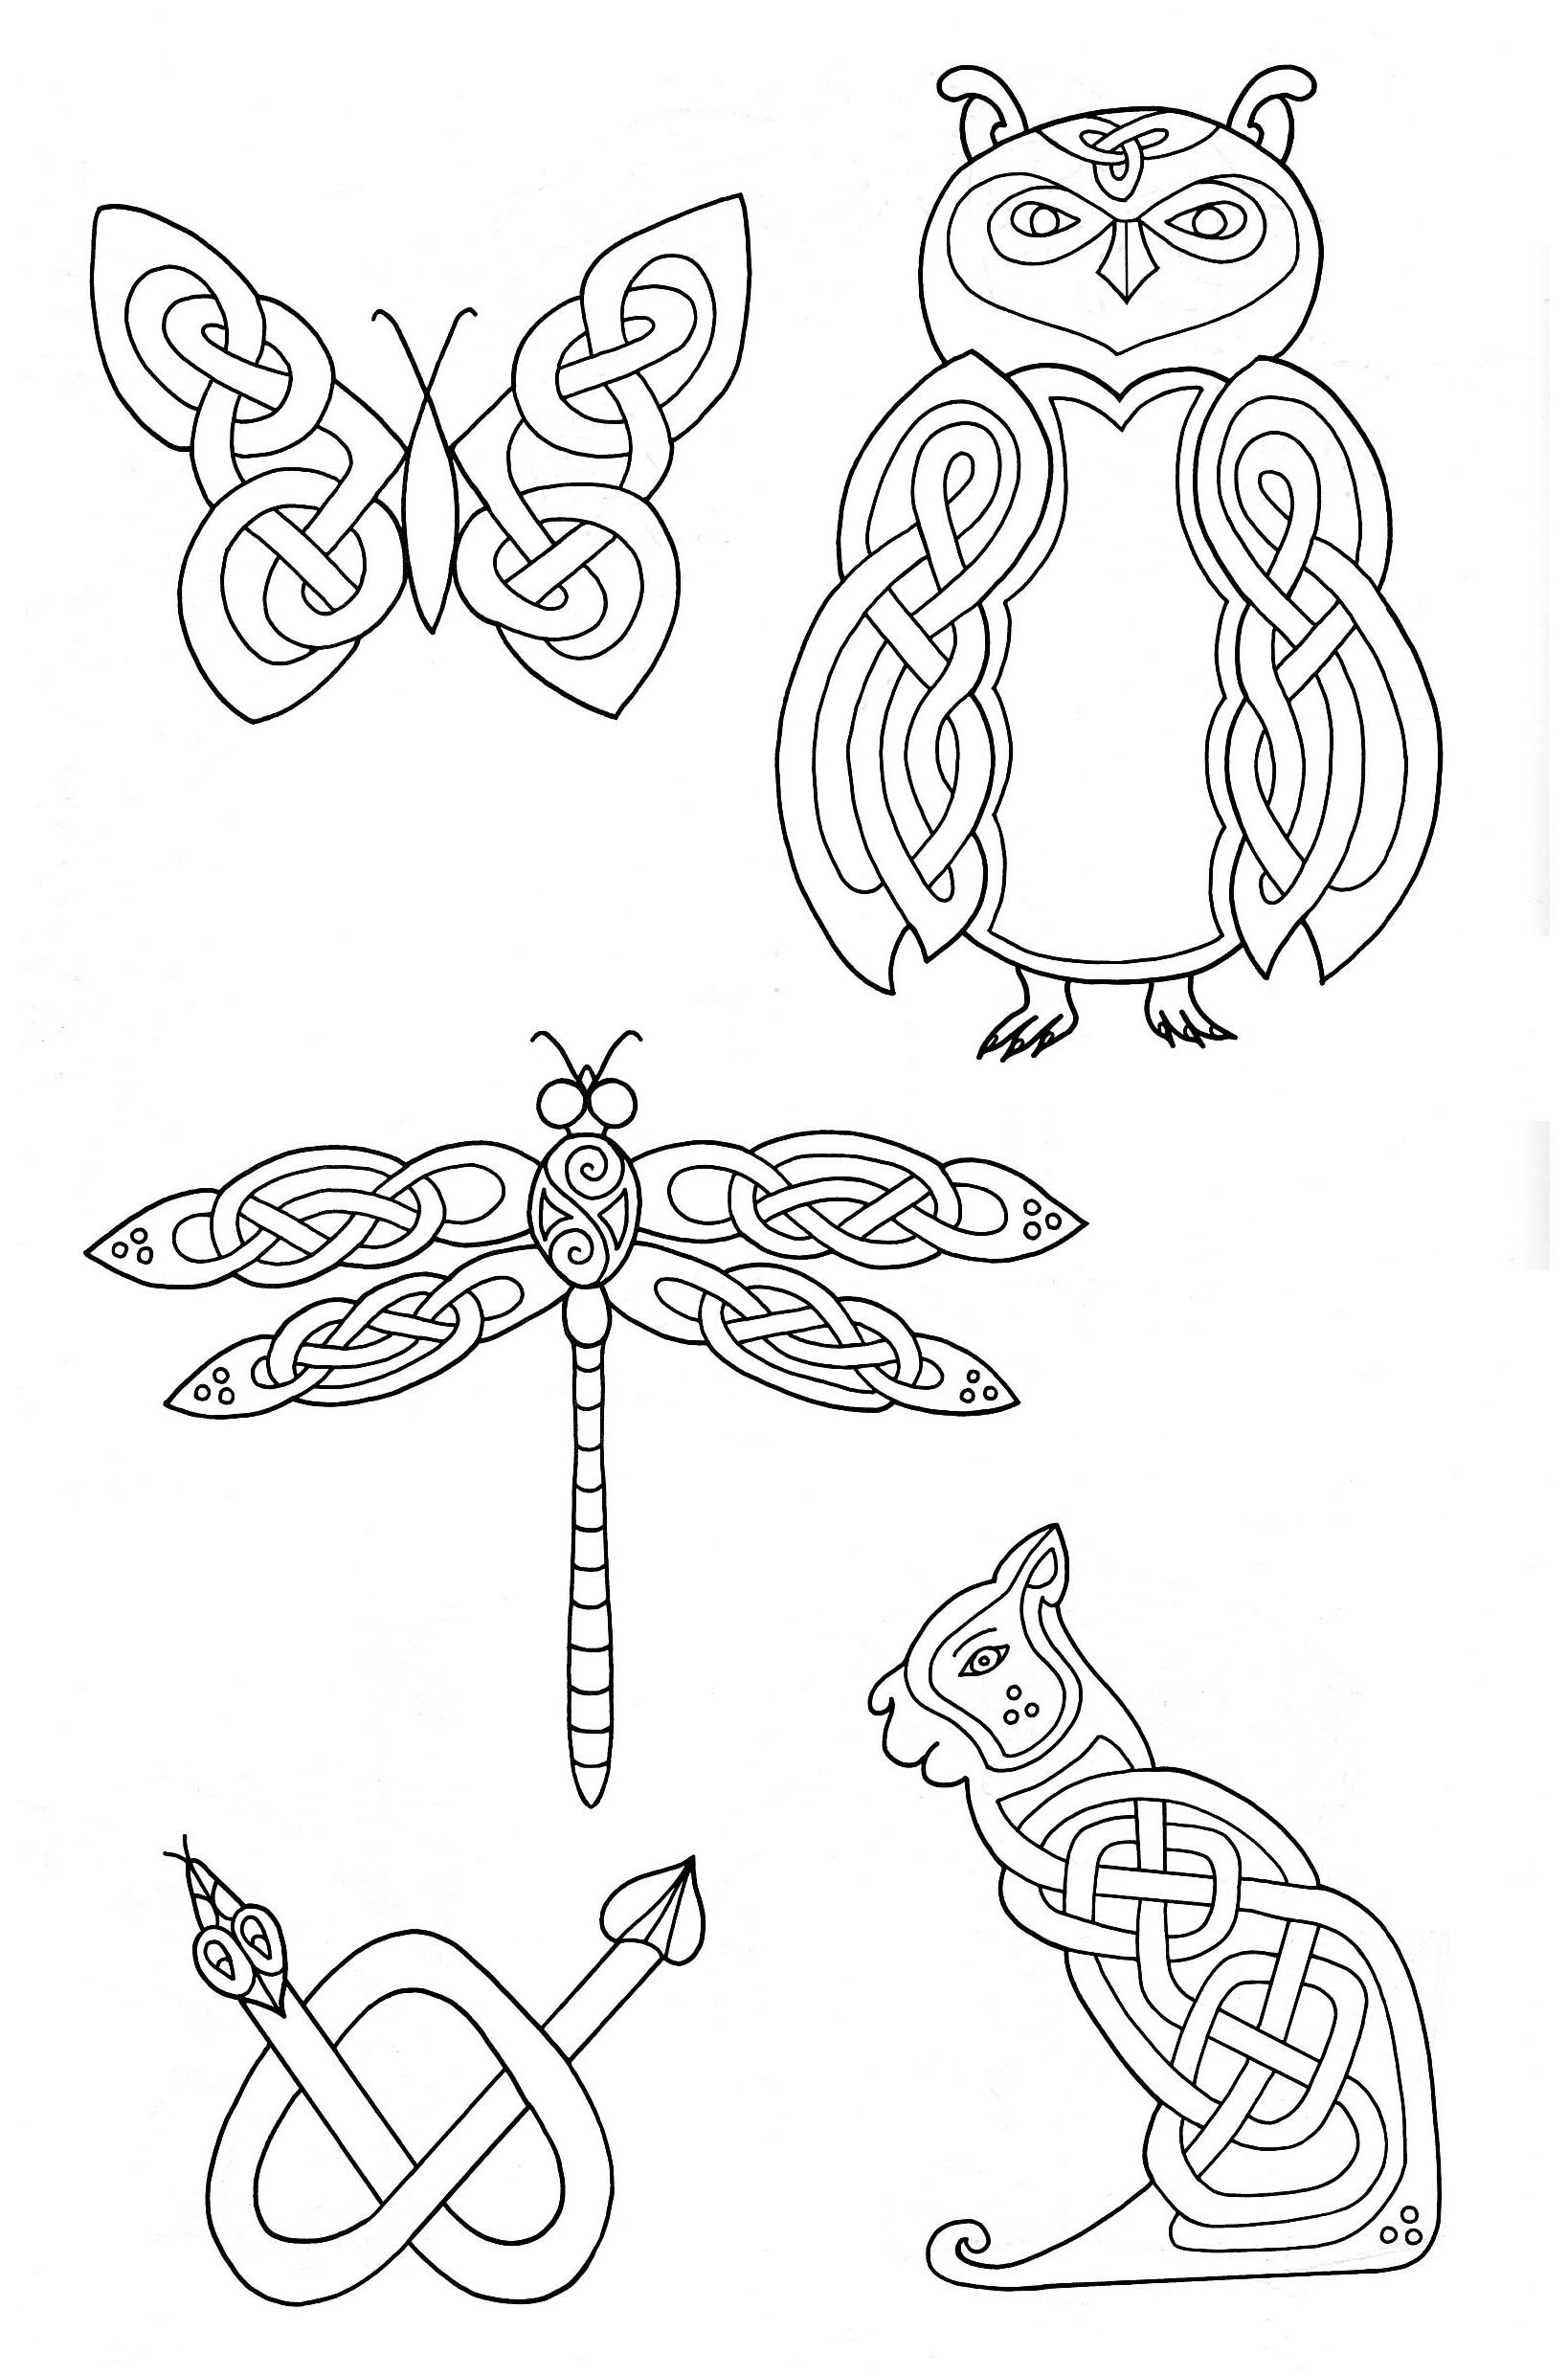 5 animals inspired by Celtic Art